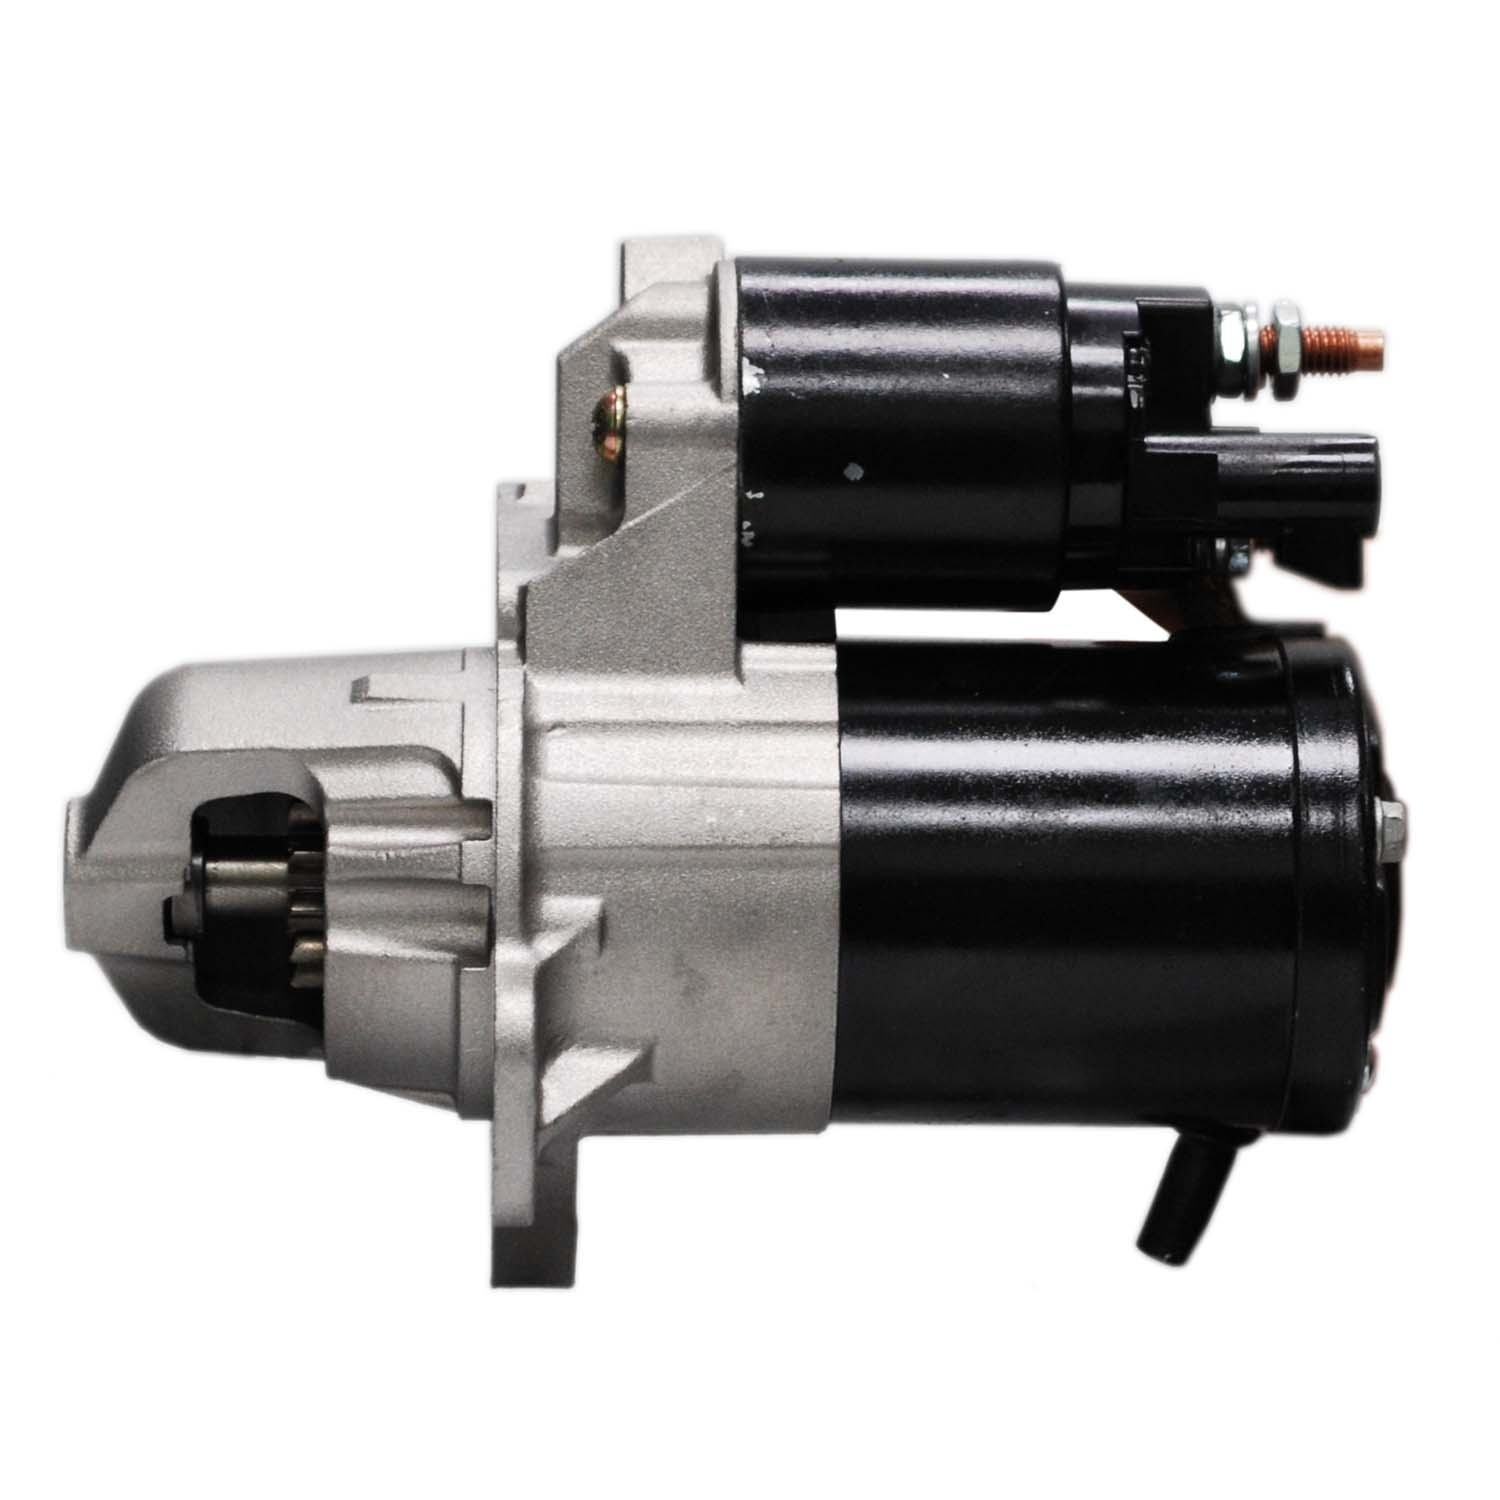 ACDELCO GOLD/PROFESSIONAL - Reman Starter Motor - DCC 336-2088A